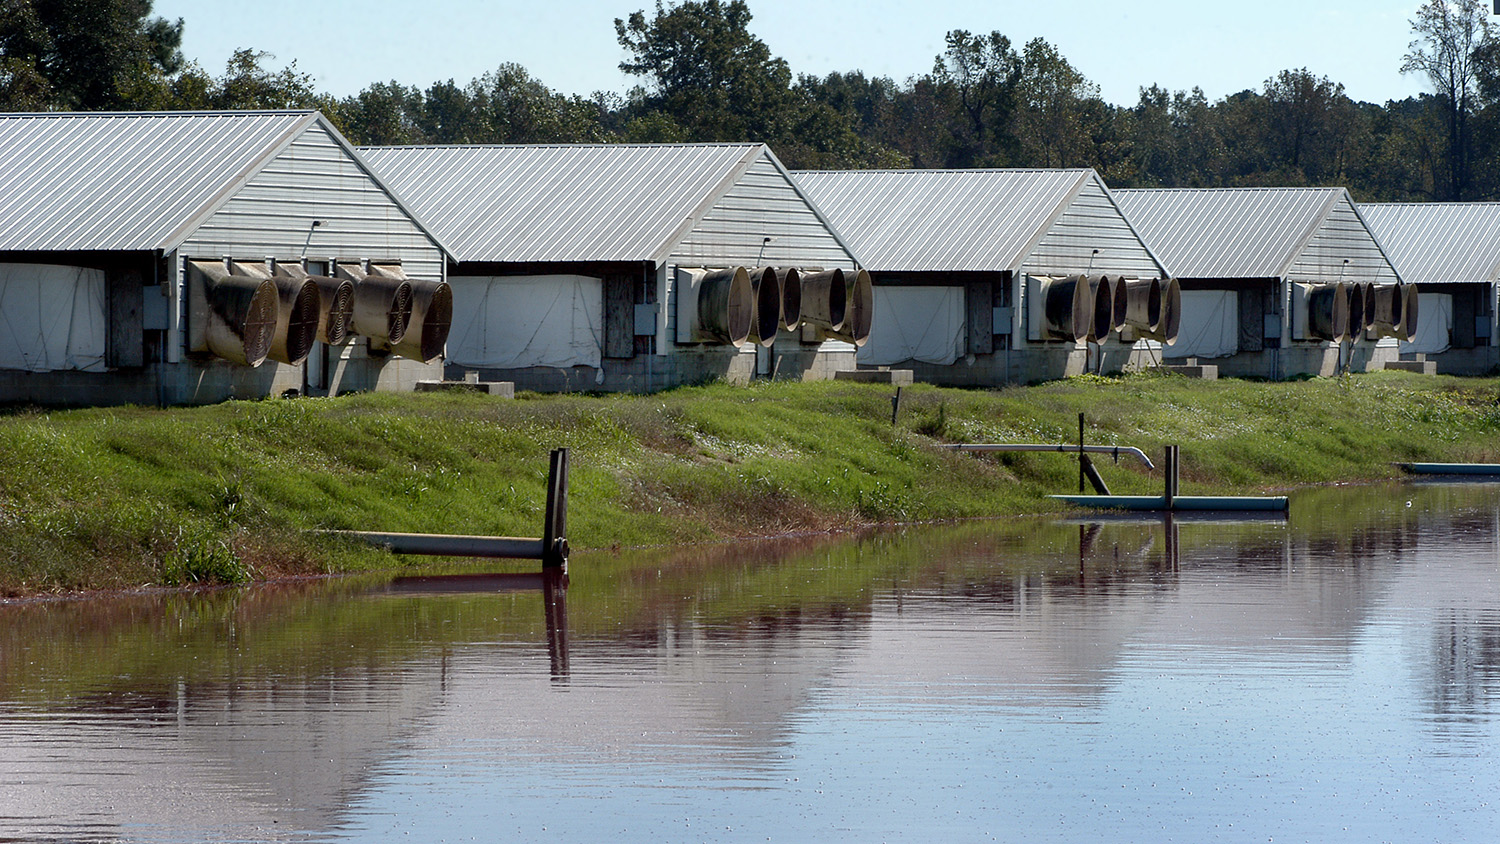 Waste lagoon and hog houses